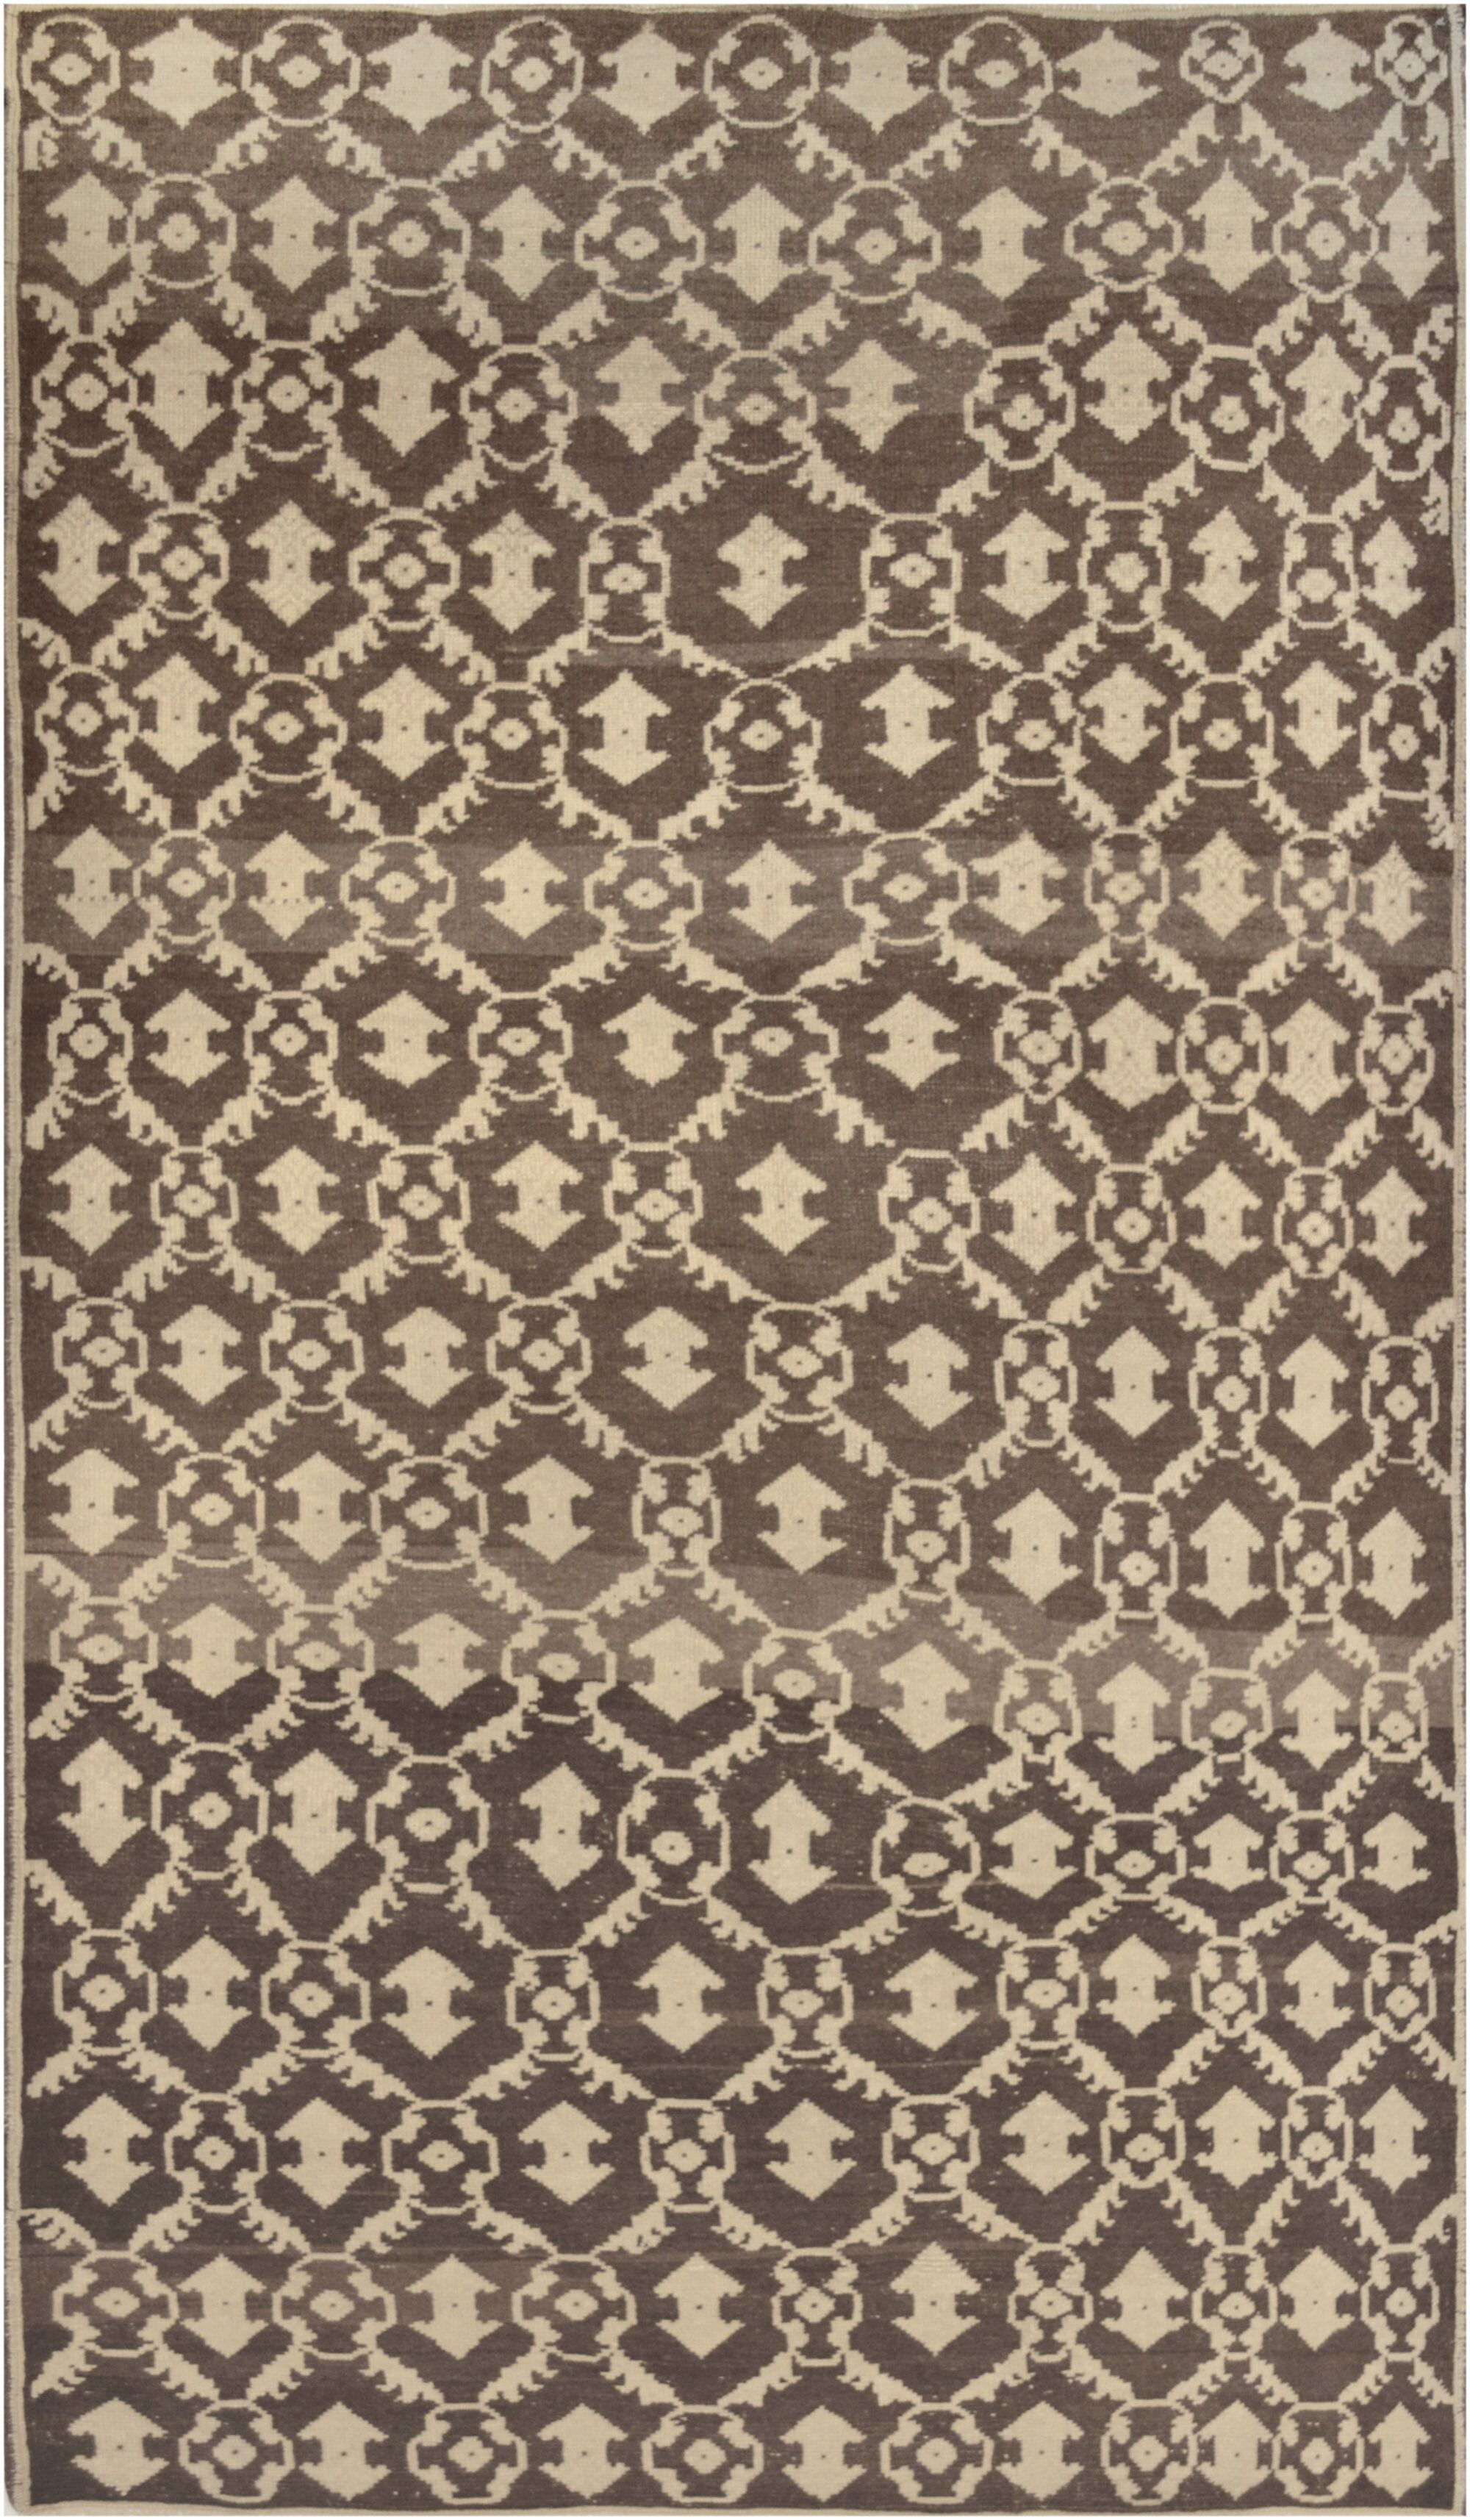 One-of-a-Kind Turkish Quality Hand-Knotted Wool Brown Indoor Area Rug